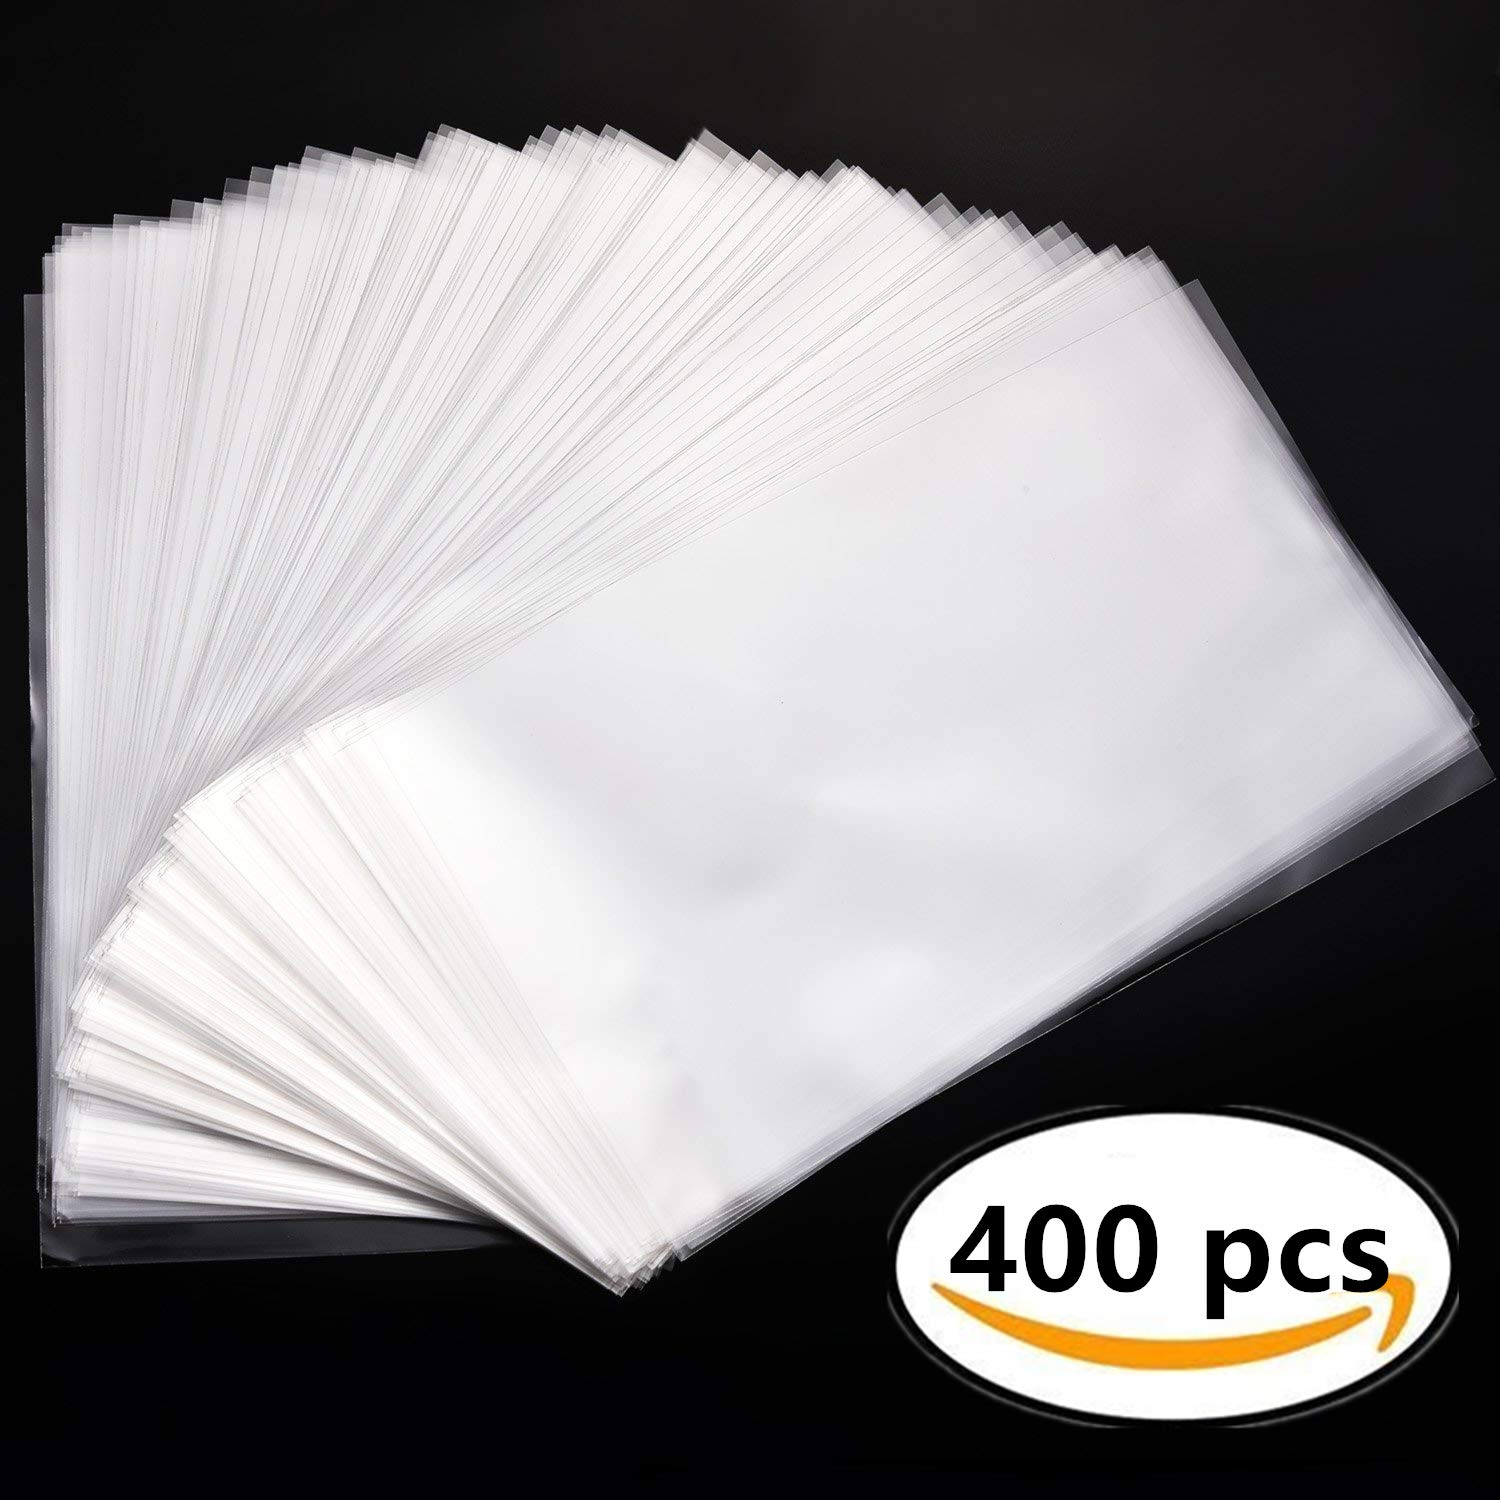 JeVenis 400 PCS 4.3''x 7'' Clear Resealable Cello Bags Tape Strip on Lip Glossy Self Sealing OPP Cellophane Bags Bread Candy Chocolate Jelly Packaging Bags